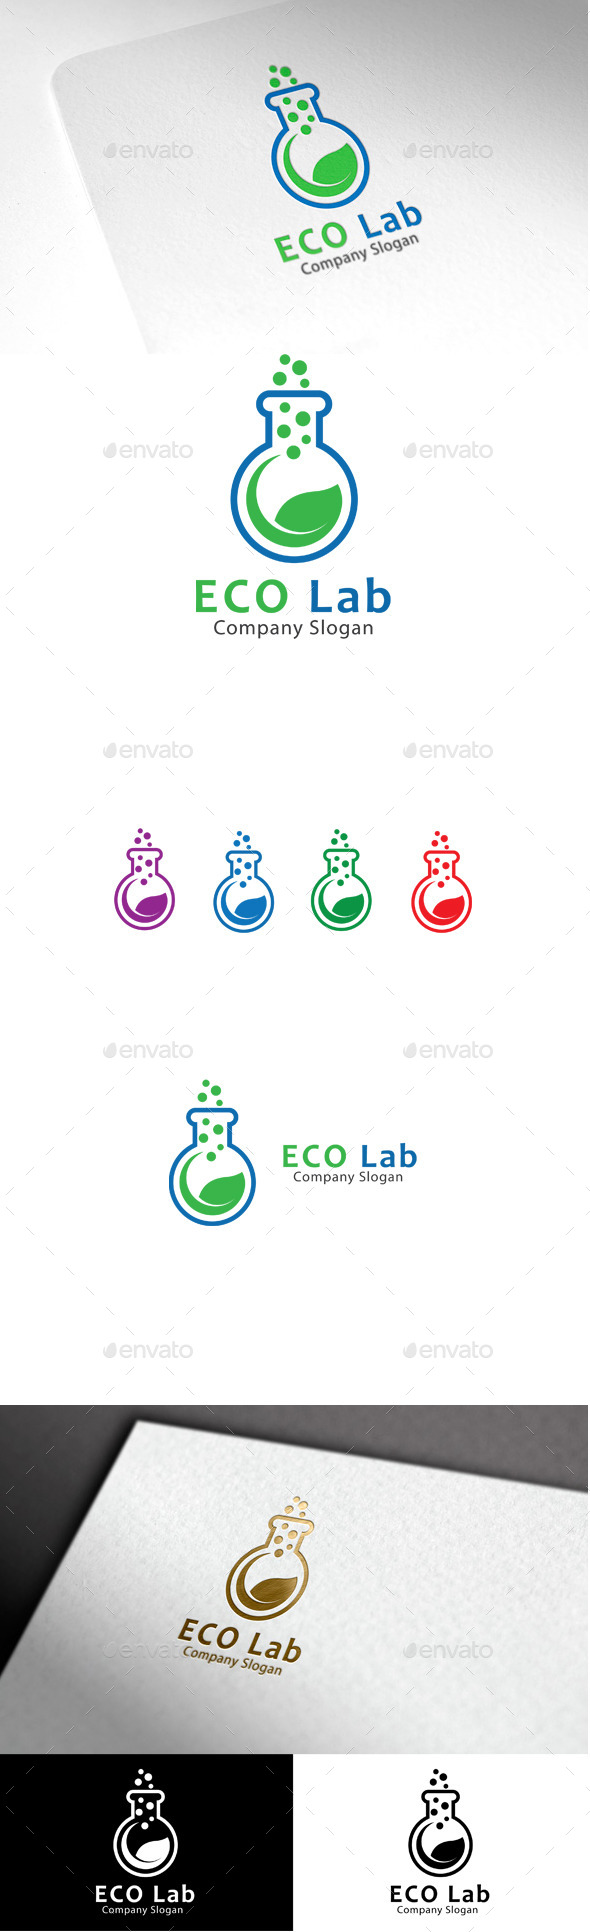 GraphicRiver Eco Lab Logo 10049193